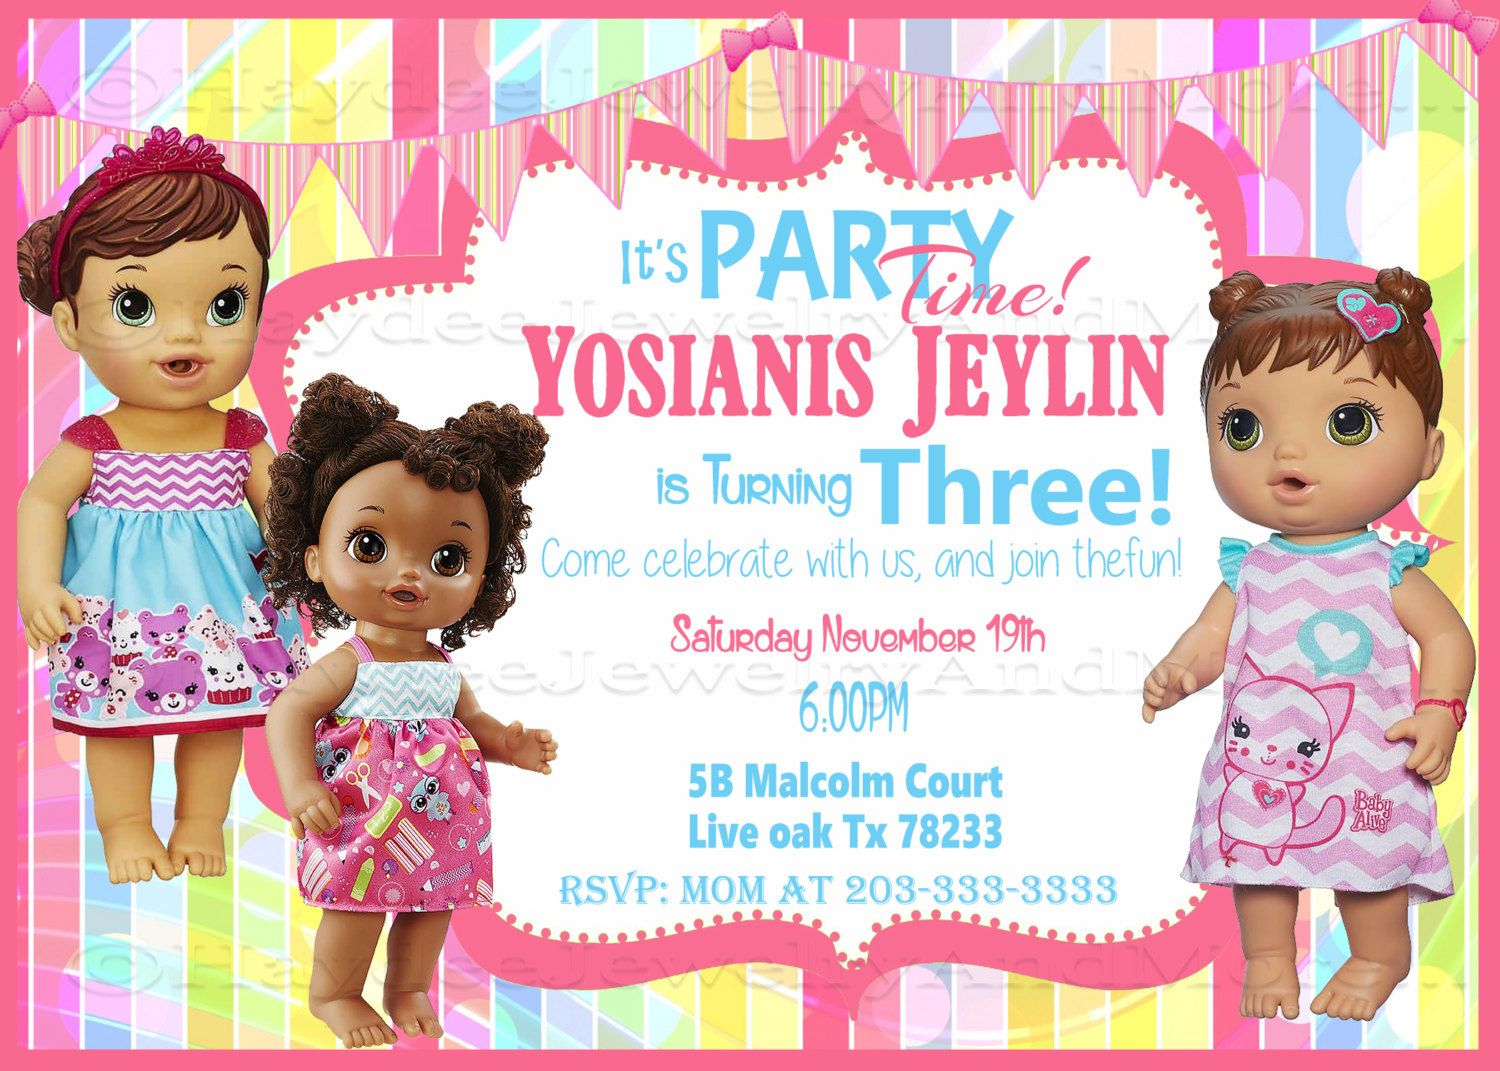 Baby Alive Girl Birthday Invitation Baby Alive Theme Invitation Card Digital File Only By Haydeejewelryandm Birthday Invitations Girl Girl Birthday Baby Alive